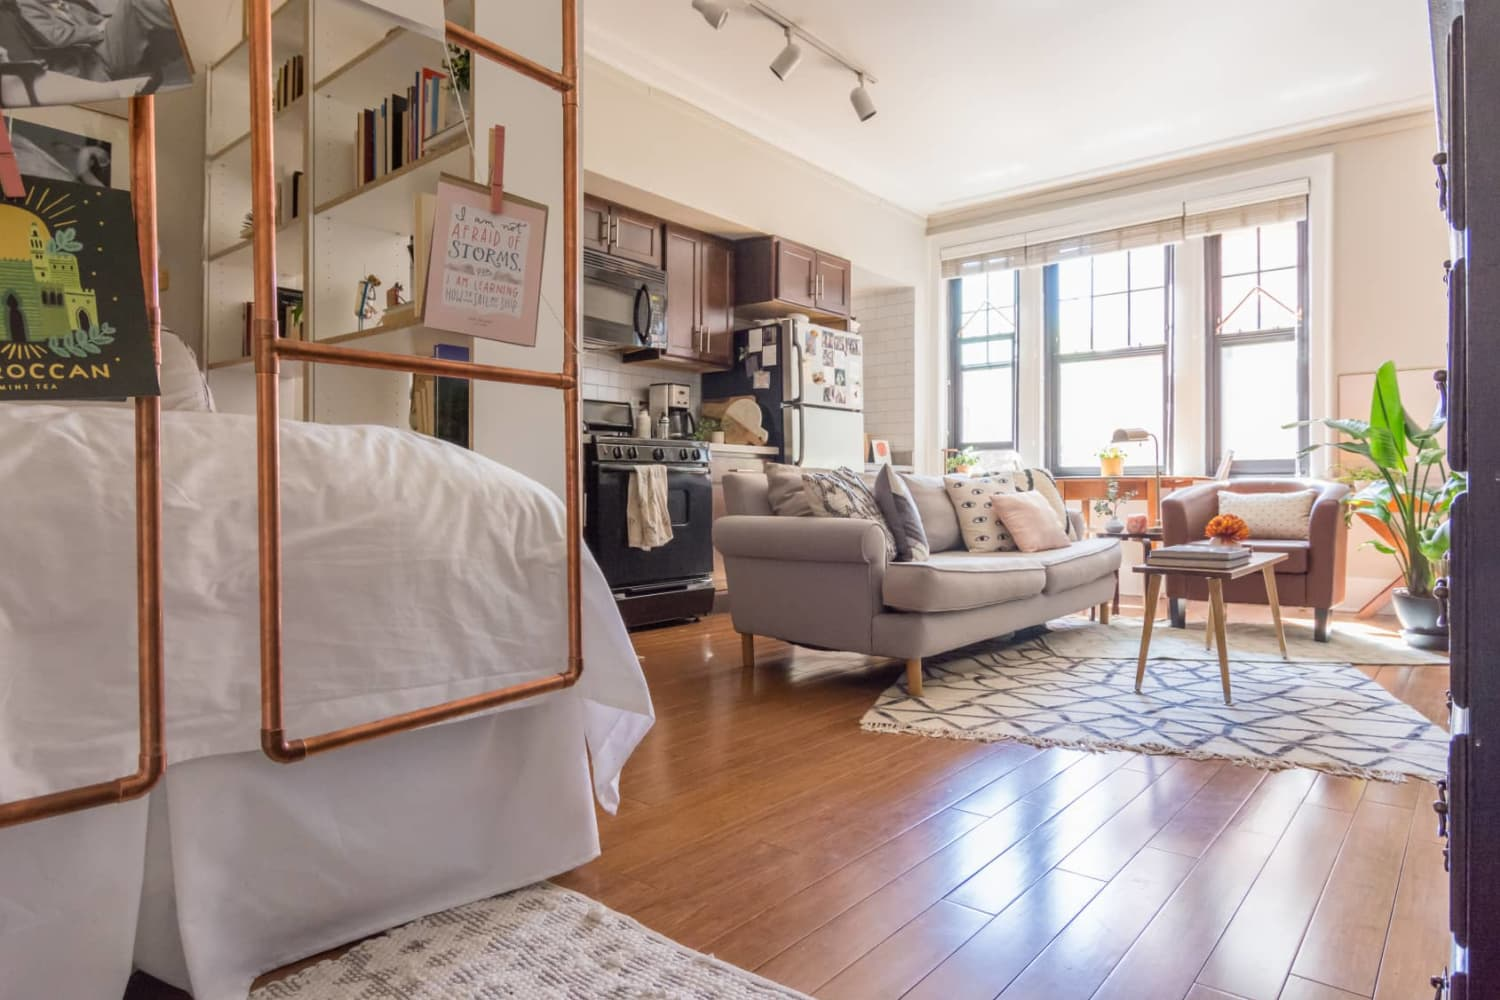 The Best Way to Make a Tiny Apartment Seem Larger, According to a Very Wise Realtor